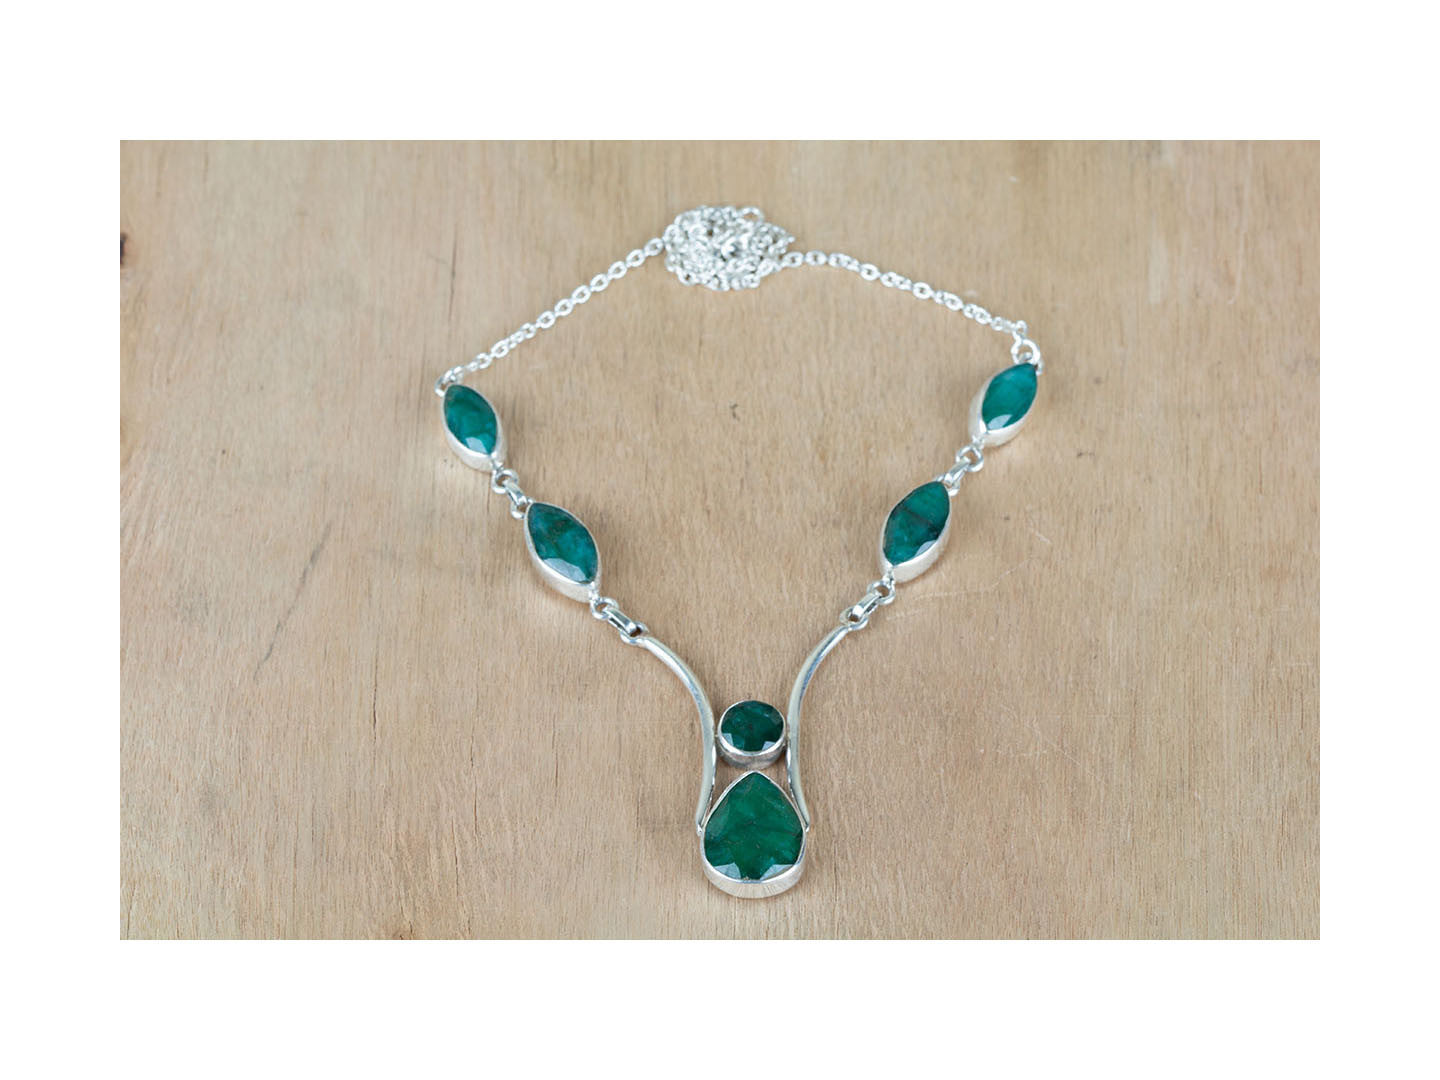 Superb Sterling Silver Emerald Necklace